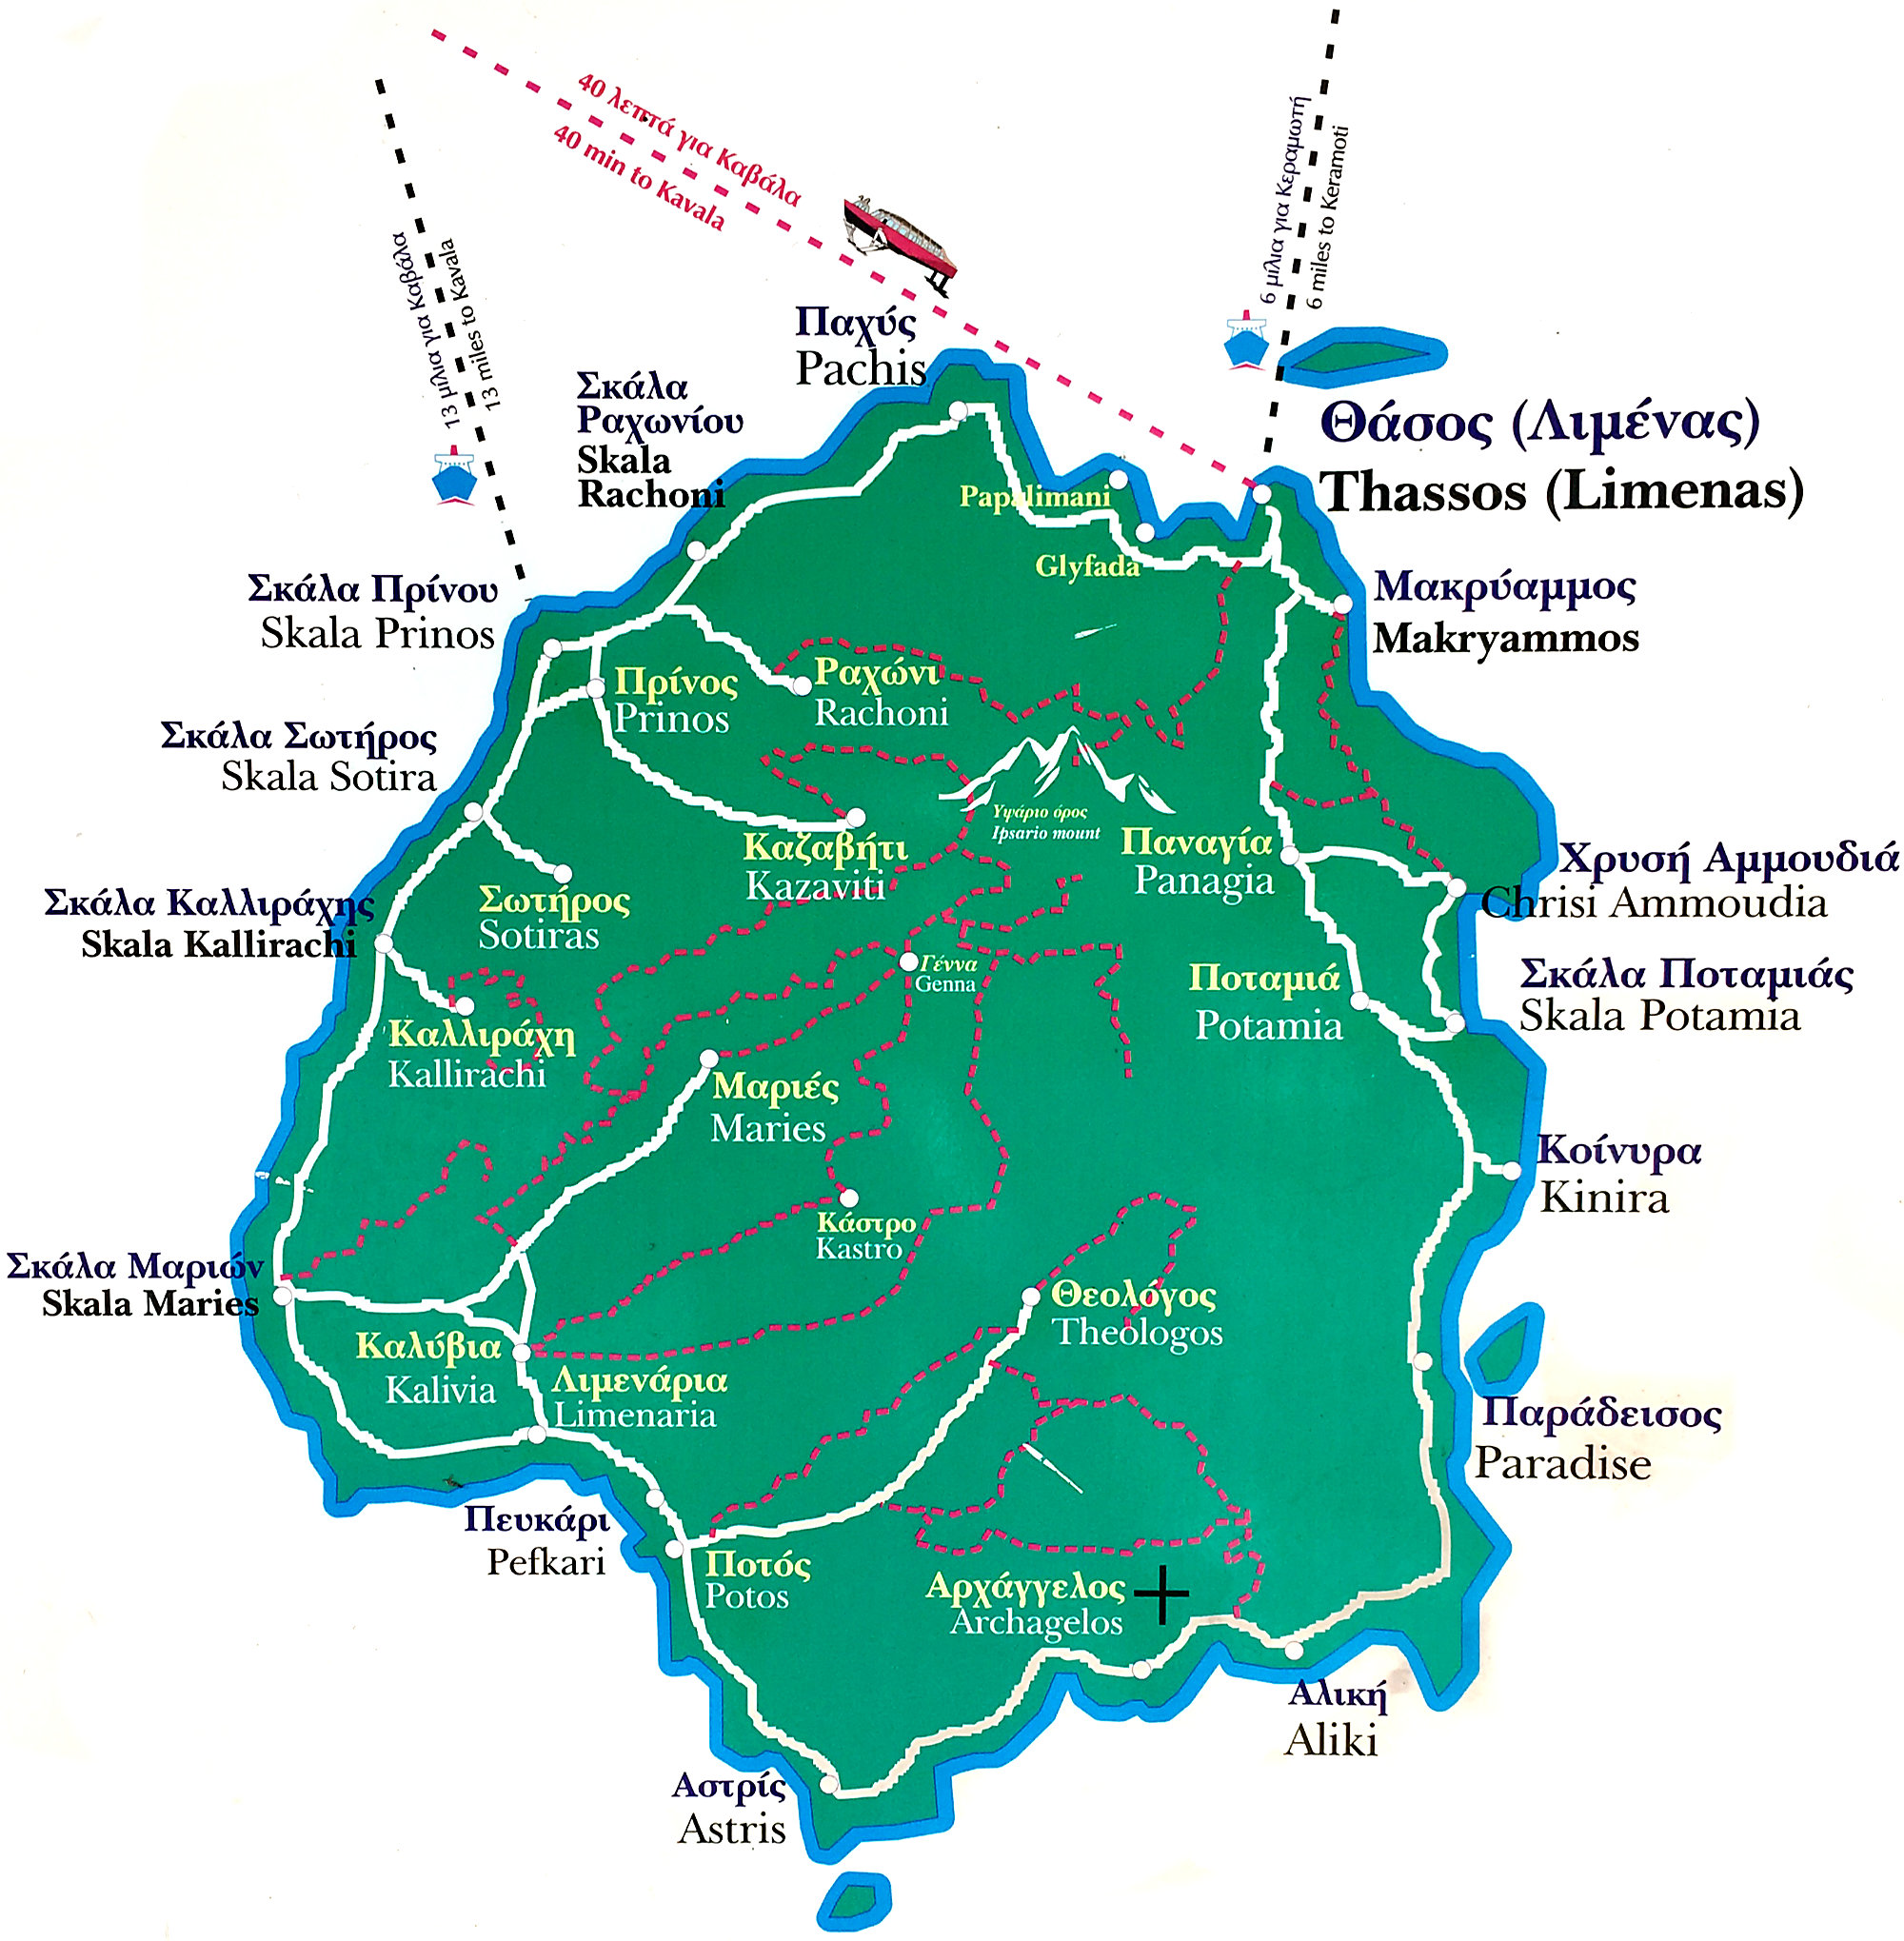 Thassos map of the island